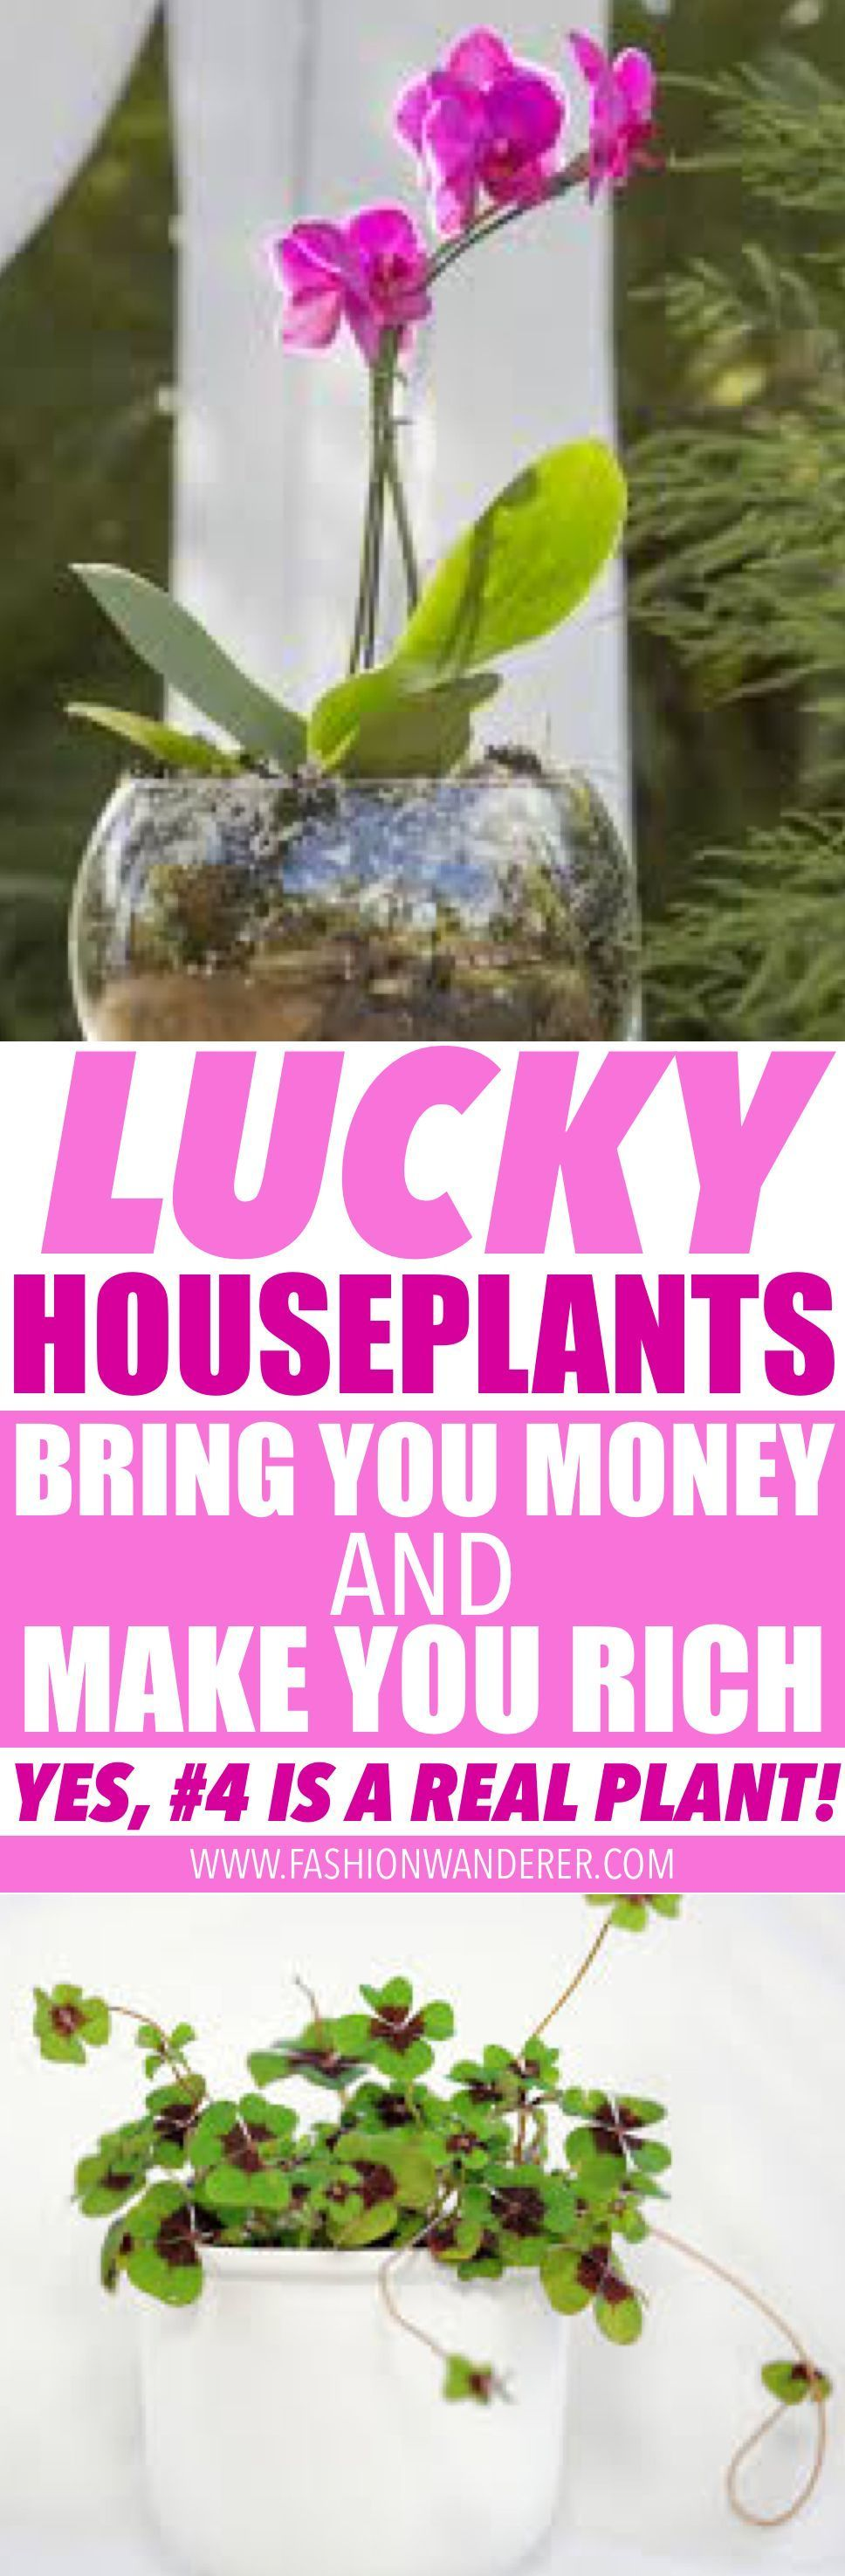 Love These Indoor Houseplants Make Your Rich I Didnt Know